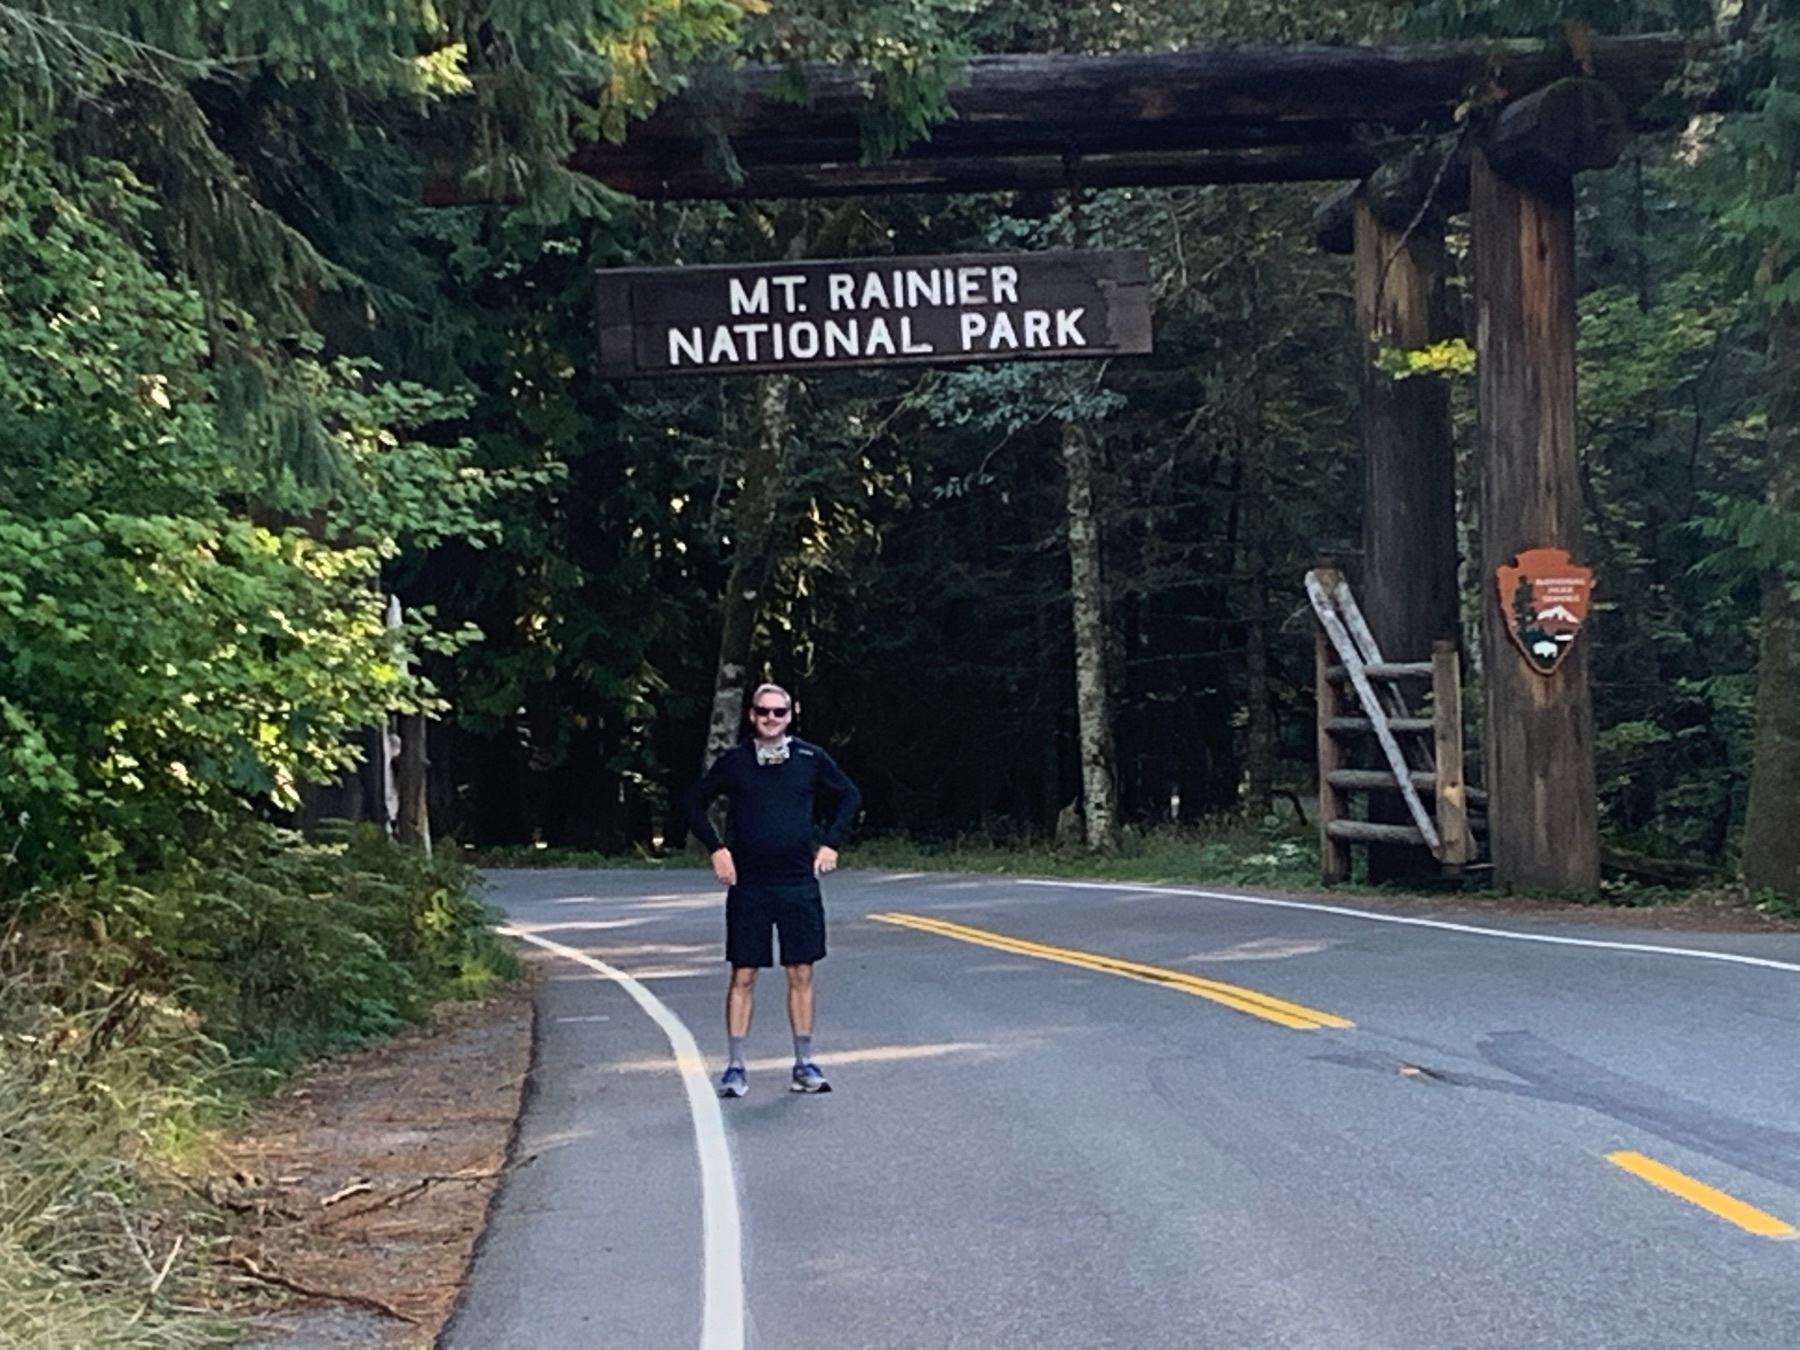 Mt Rainier National Forest Nisqually Entrance